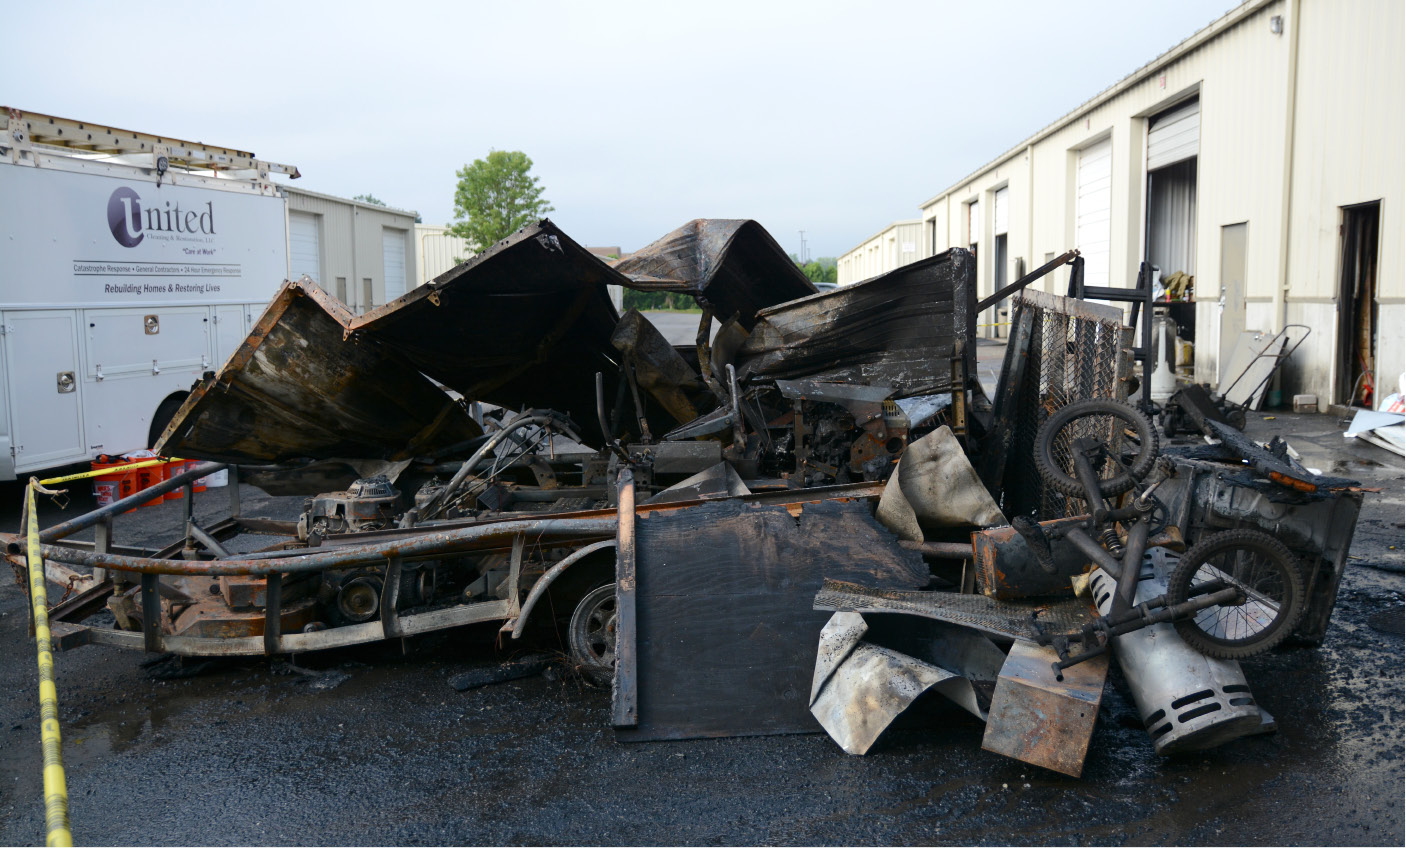 Firefighters battle fire at Wallingford storage facility & WALLINGFORD u2014 An early morning fire caused heavy damage to units at